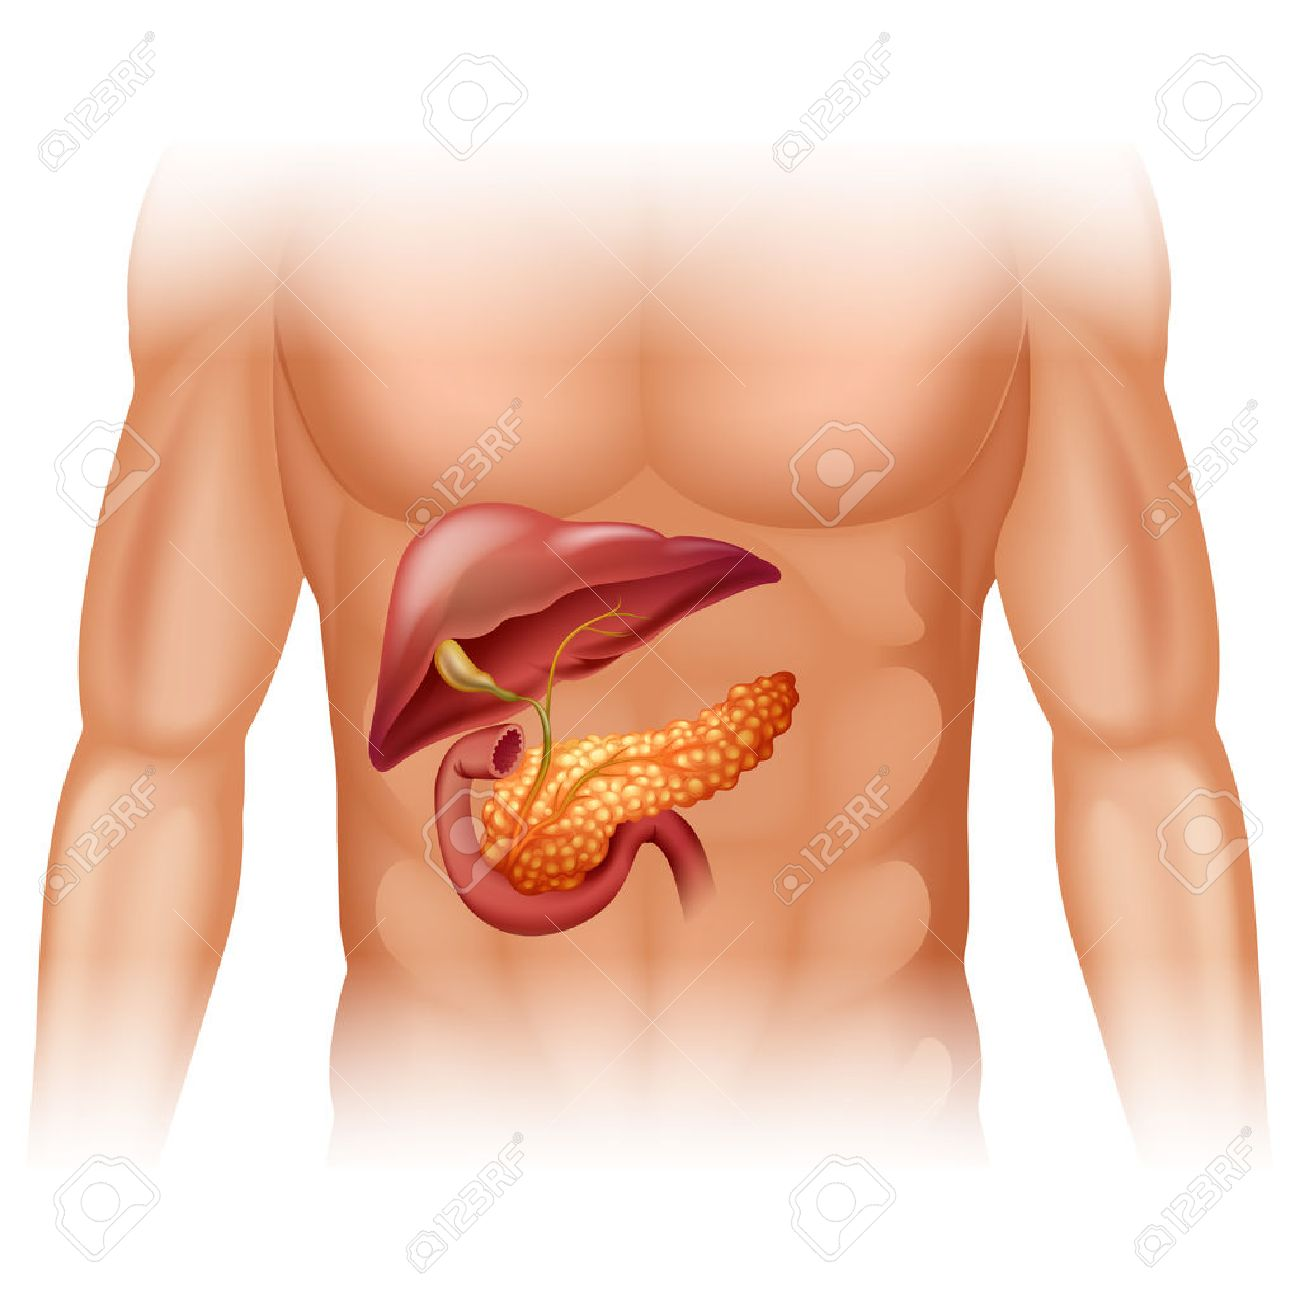 Pancreas Cancer Diagram In Detail Illustration Royalty Free Cliparts ...